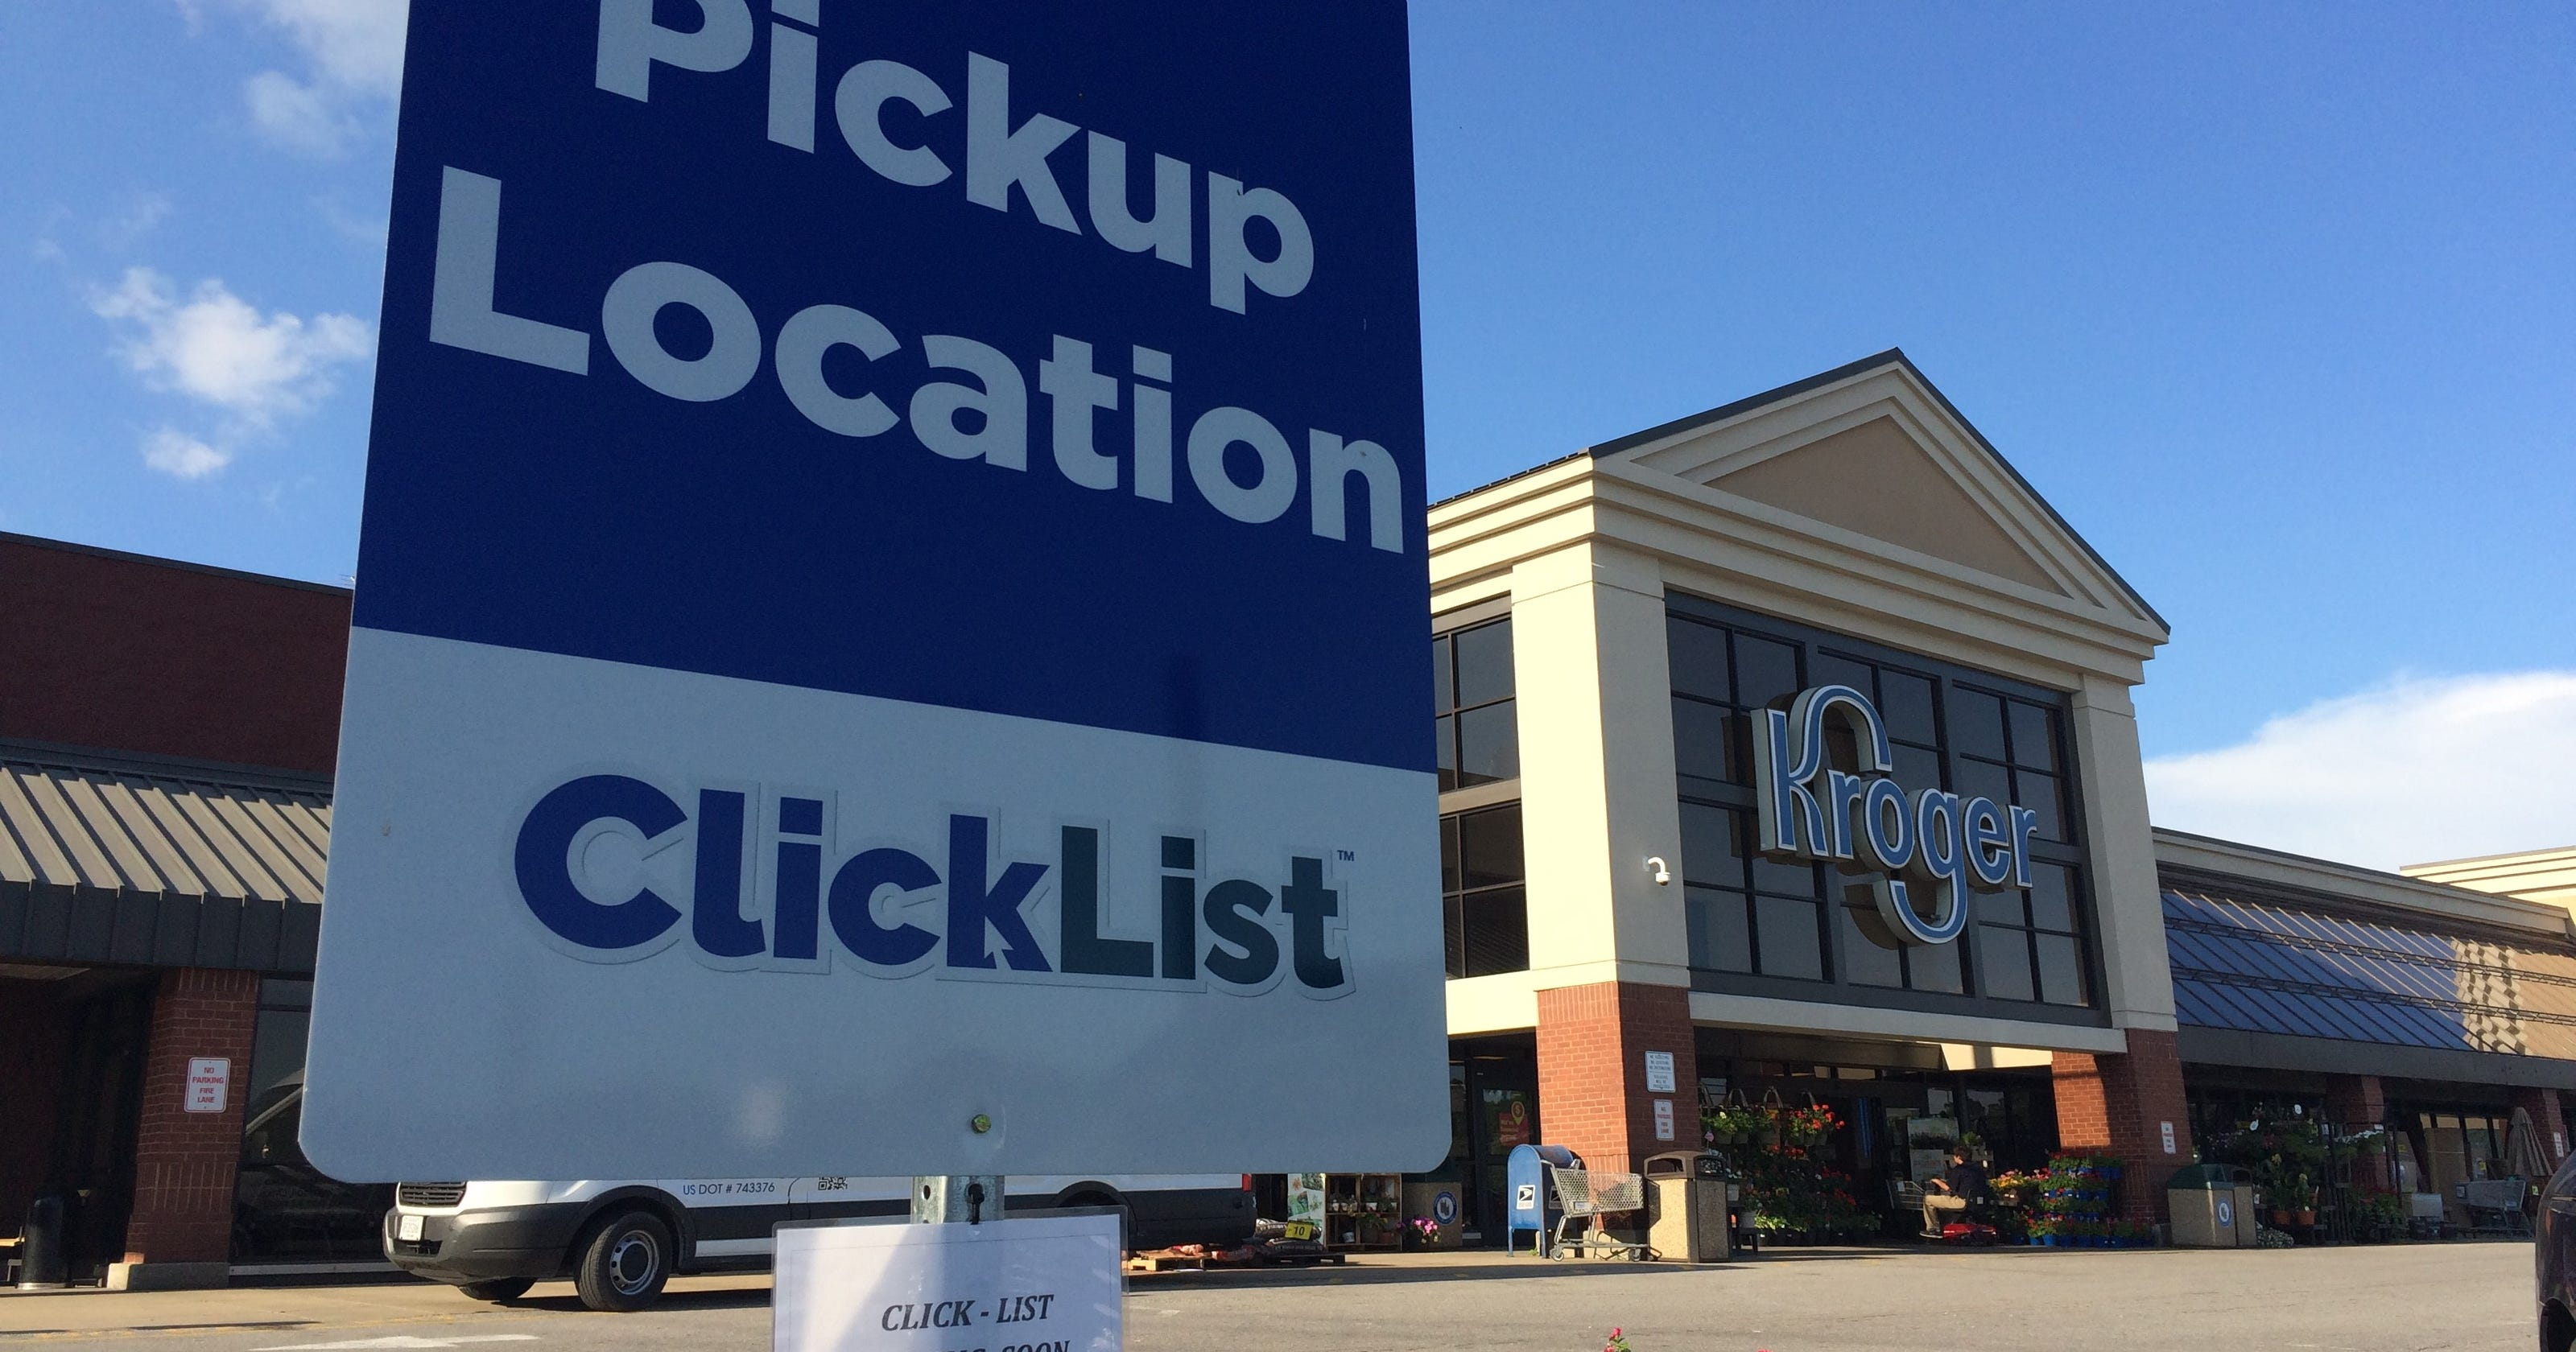 Dickson Kroger online ordering has launched